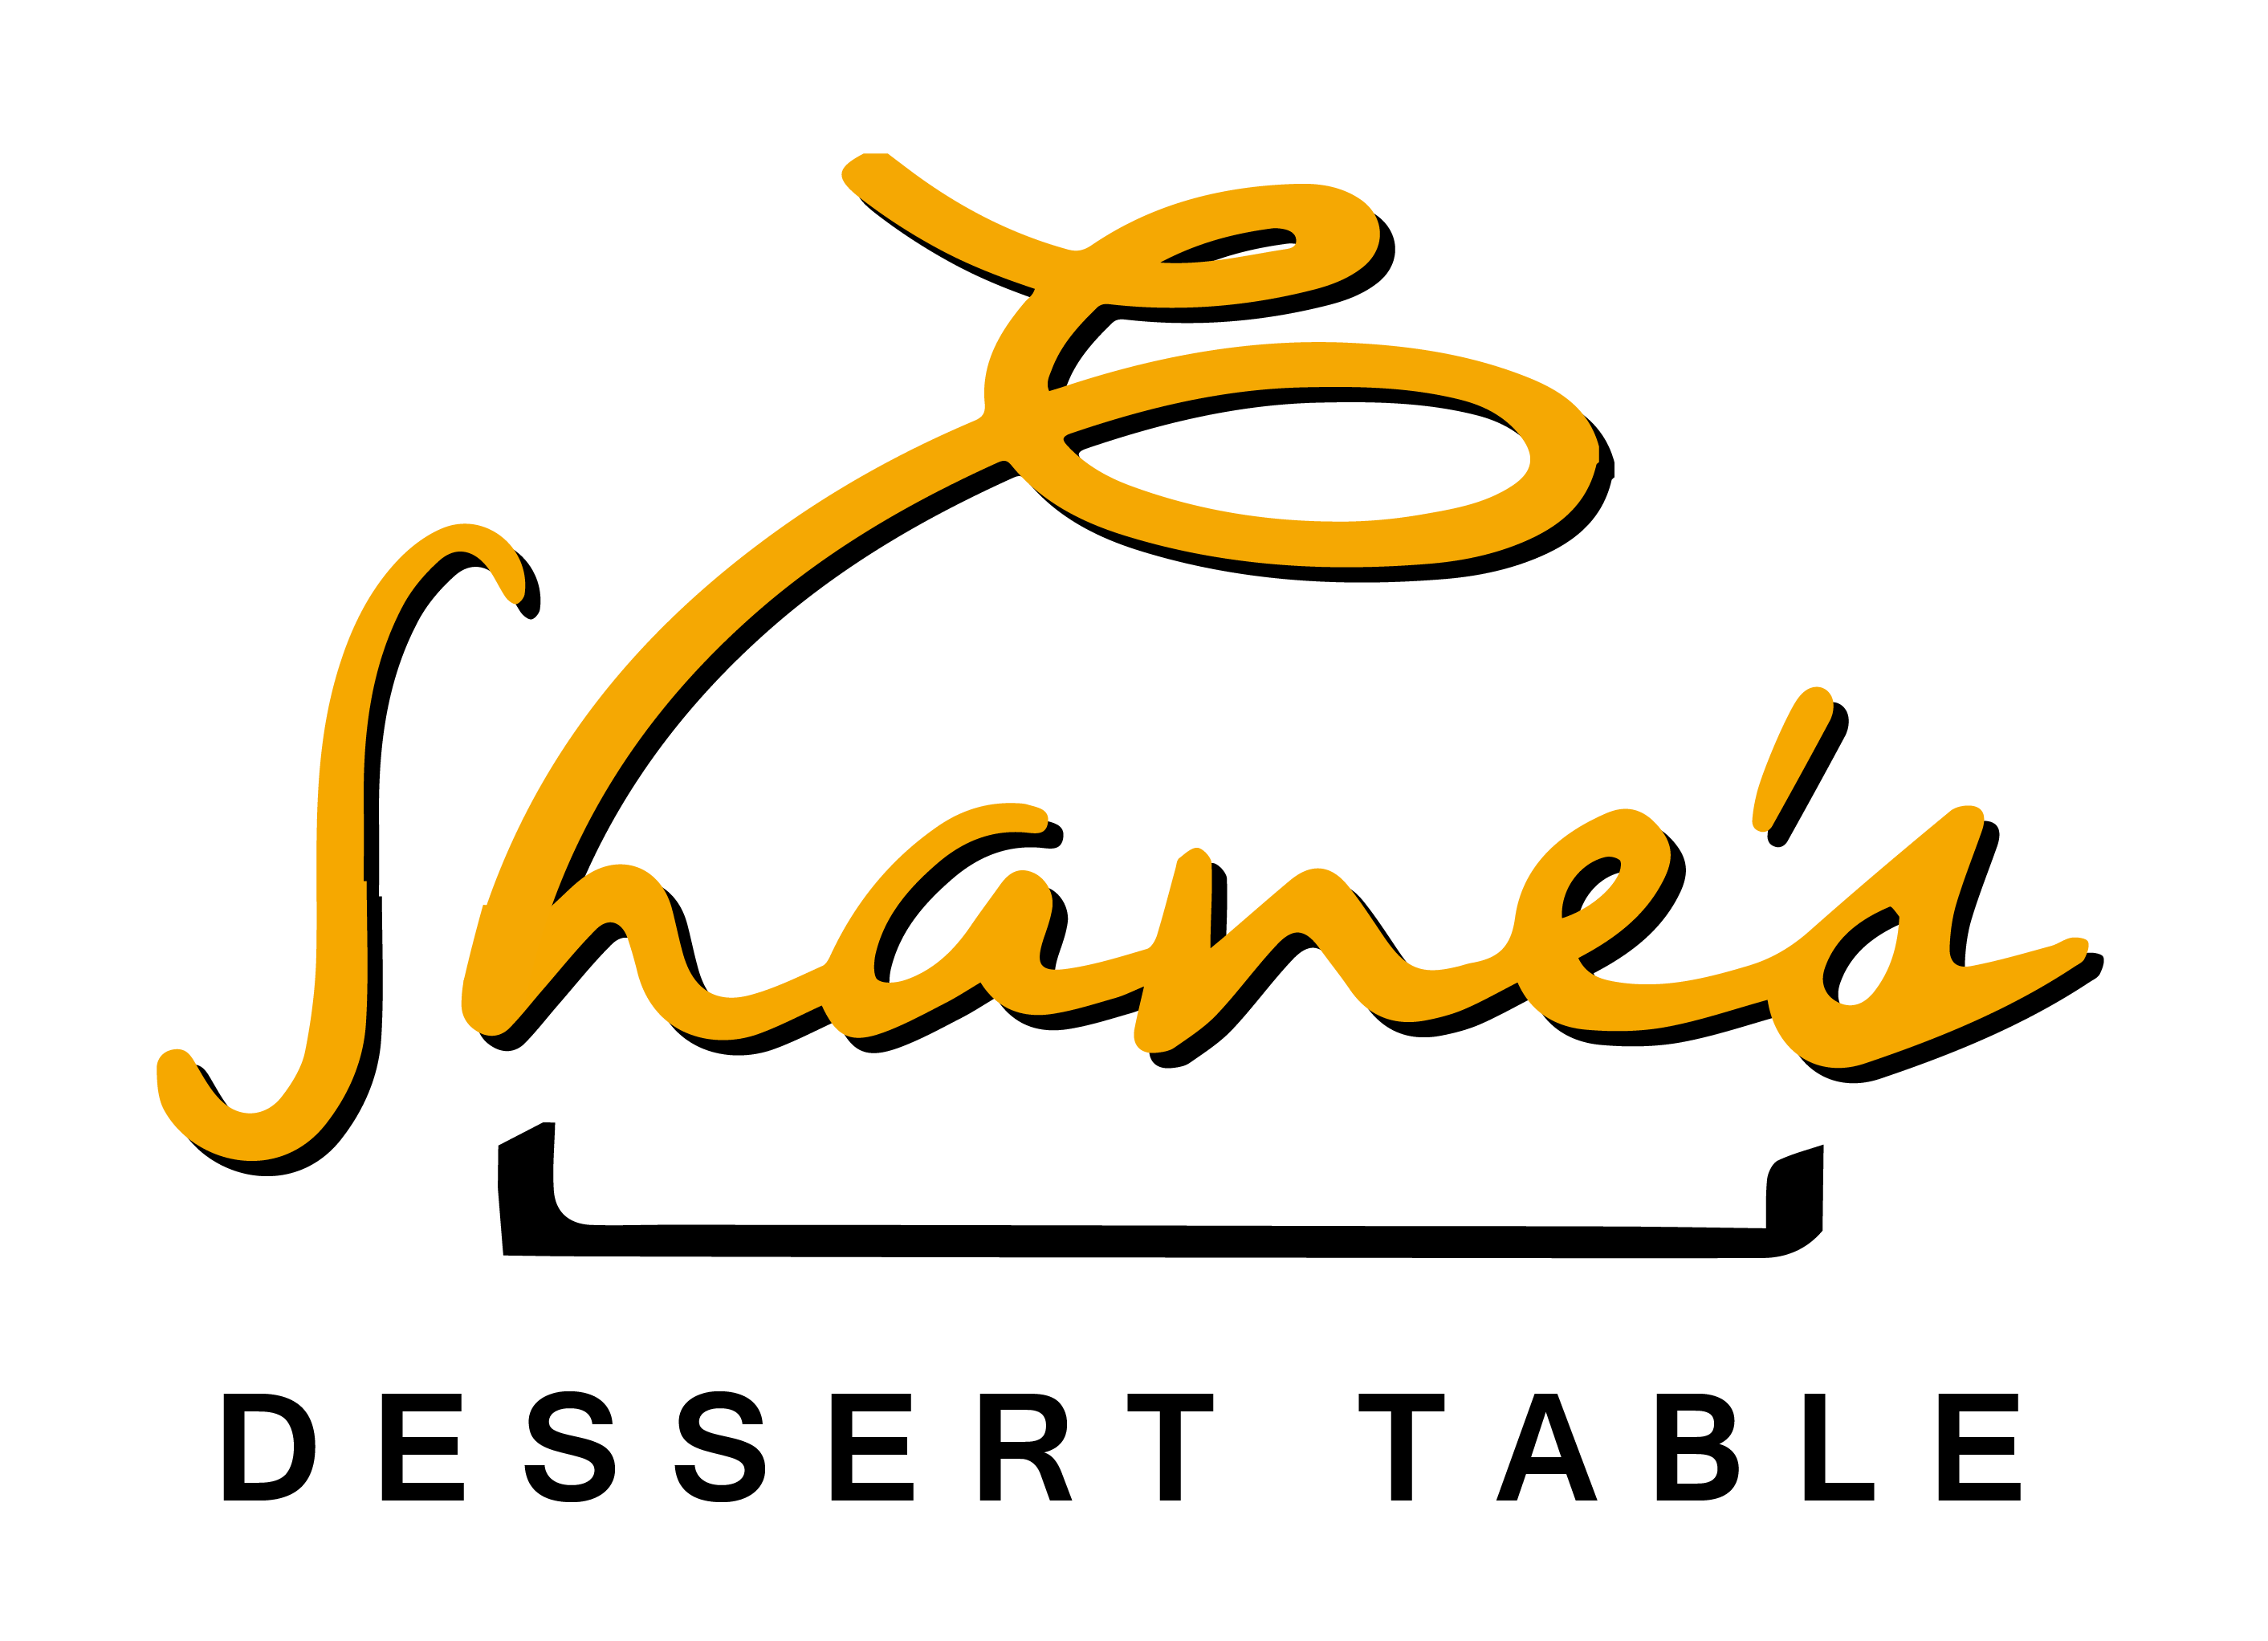 Shane's Dessert Table